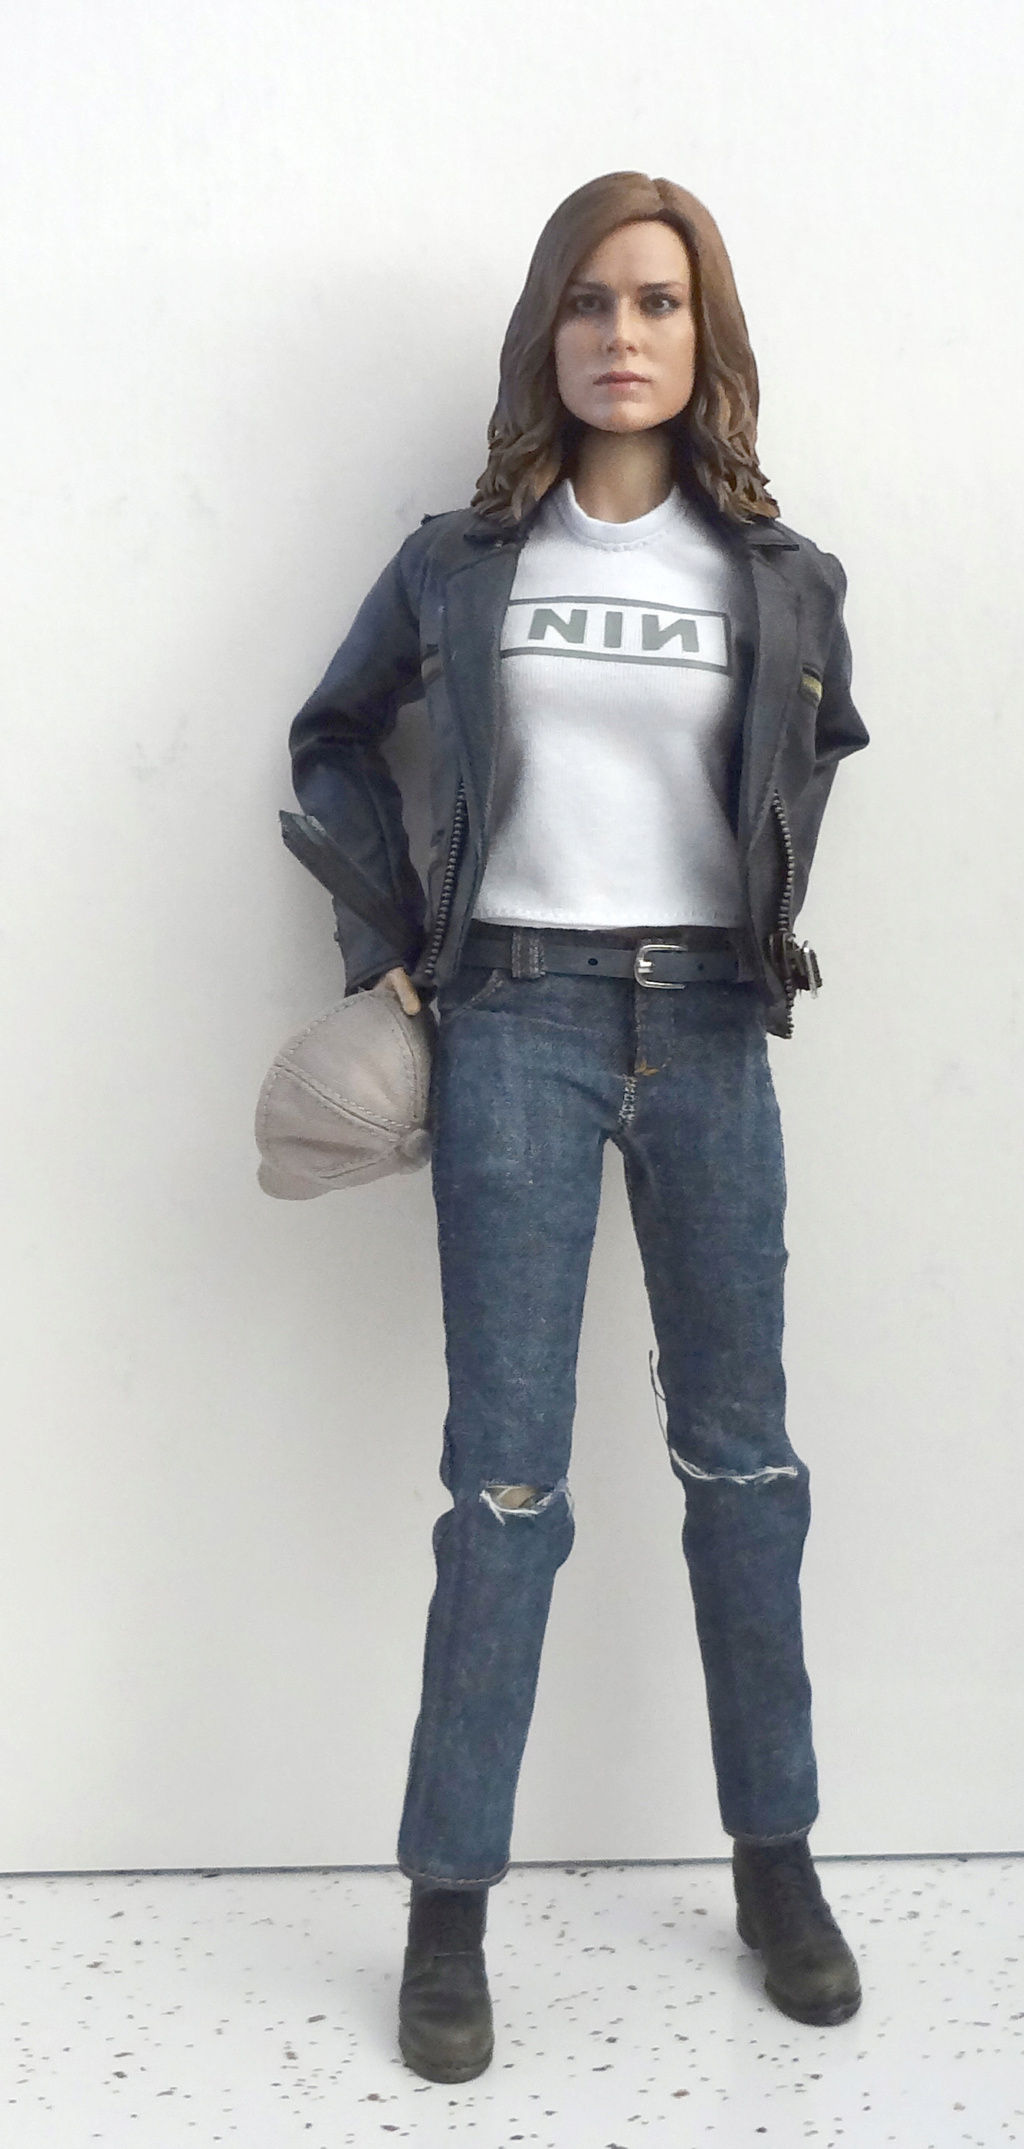 SWToys - NEW PRODUCT: Swtoys FS028 1/6 Scale Danvers figure Dsc00924